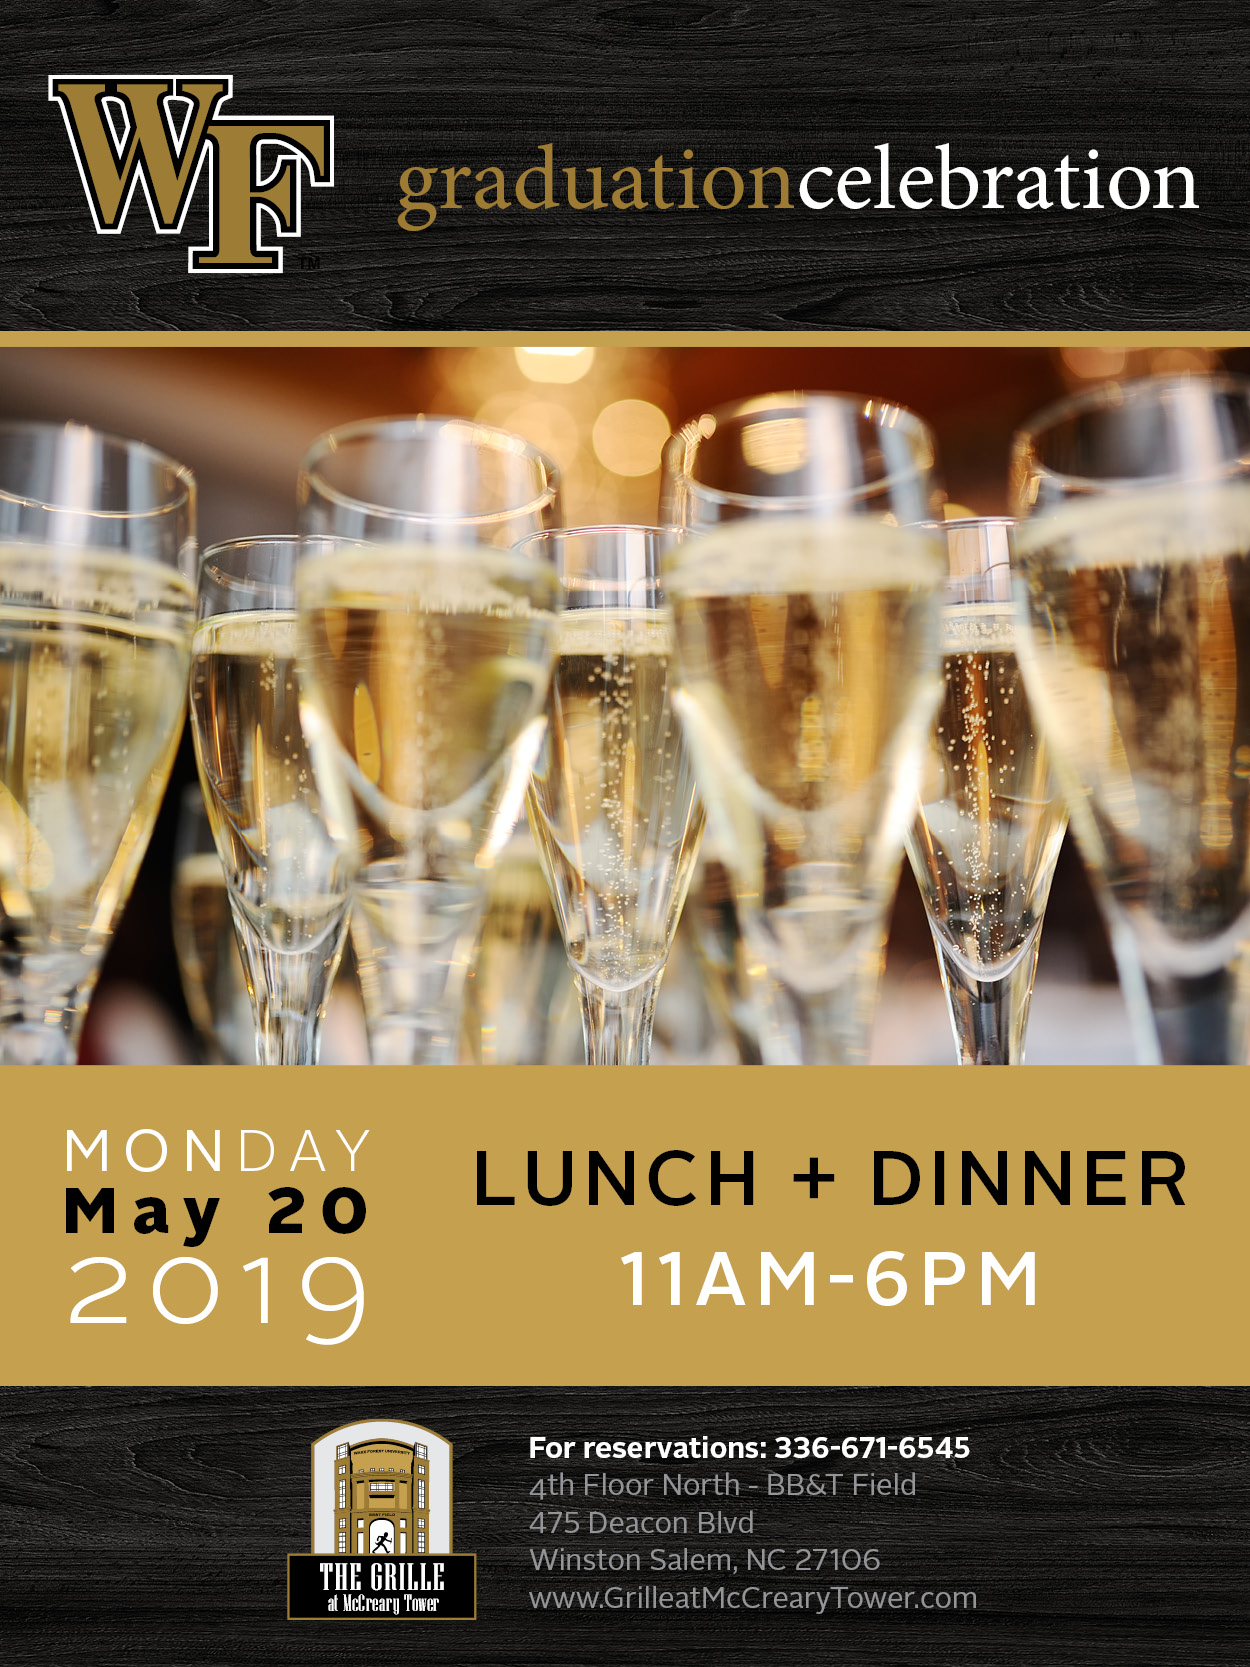 Graduation Celebration 2019 - Come join us as we celebrate this year's graduates!